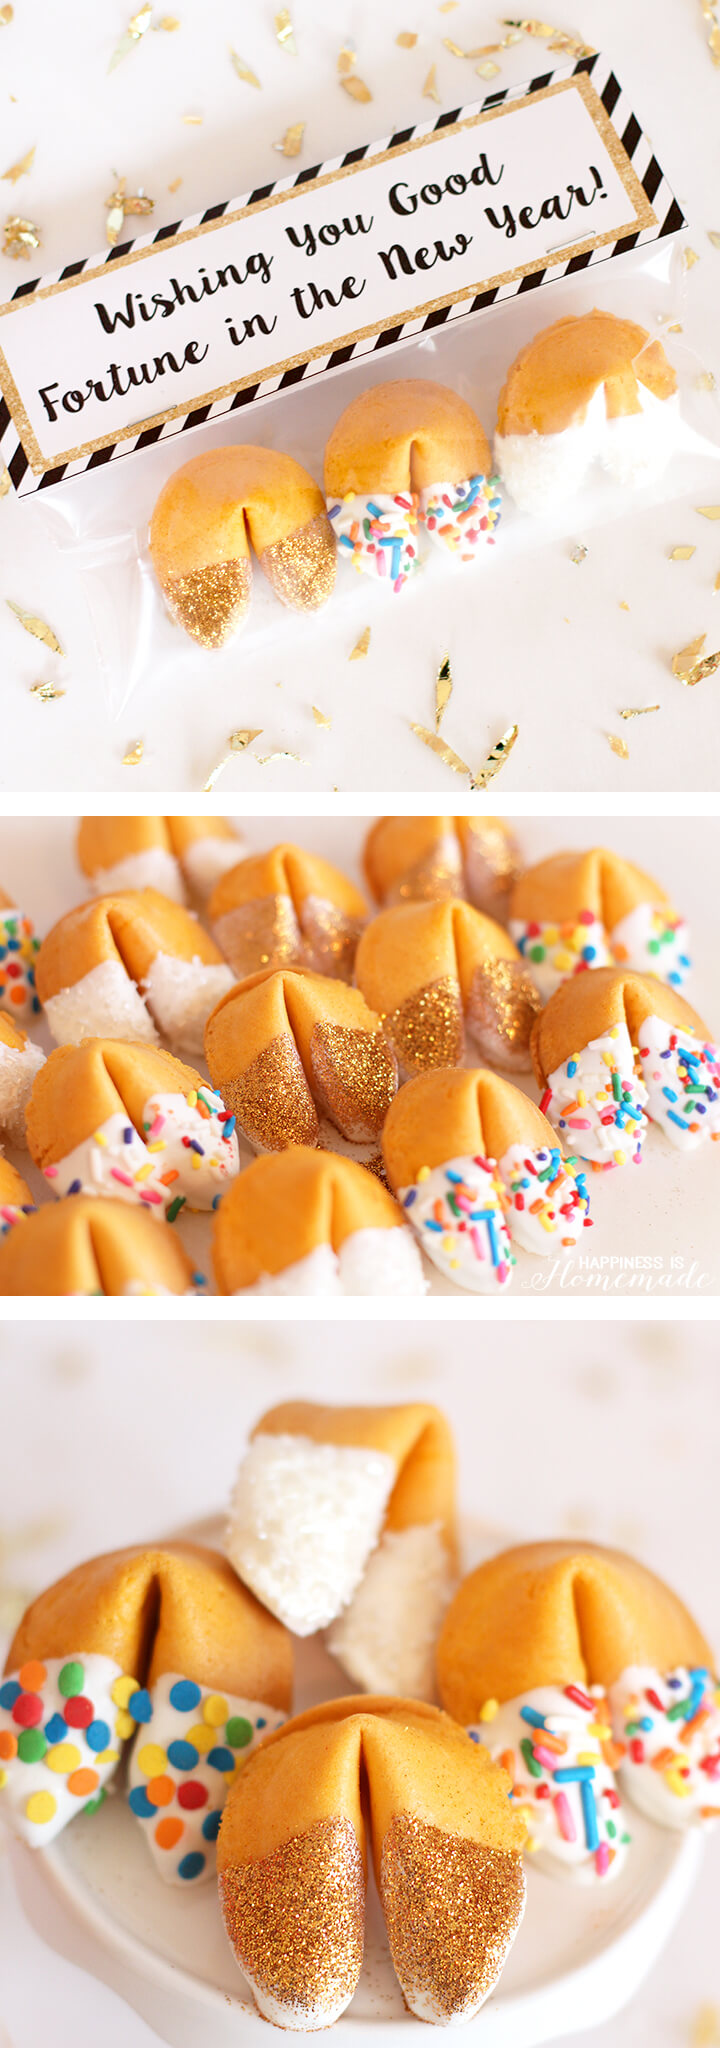 How to Make Glitter and Sprinkled Fortune Cookie Party Favors for New Years Eve